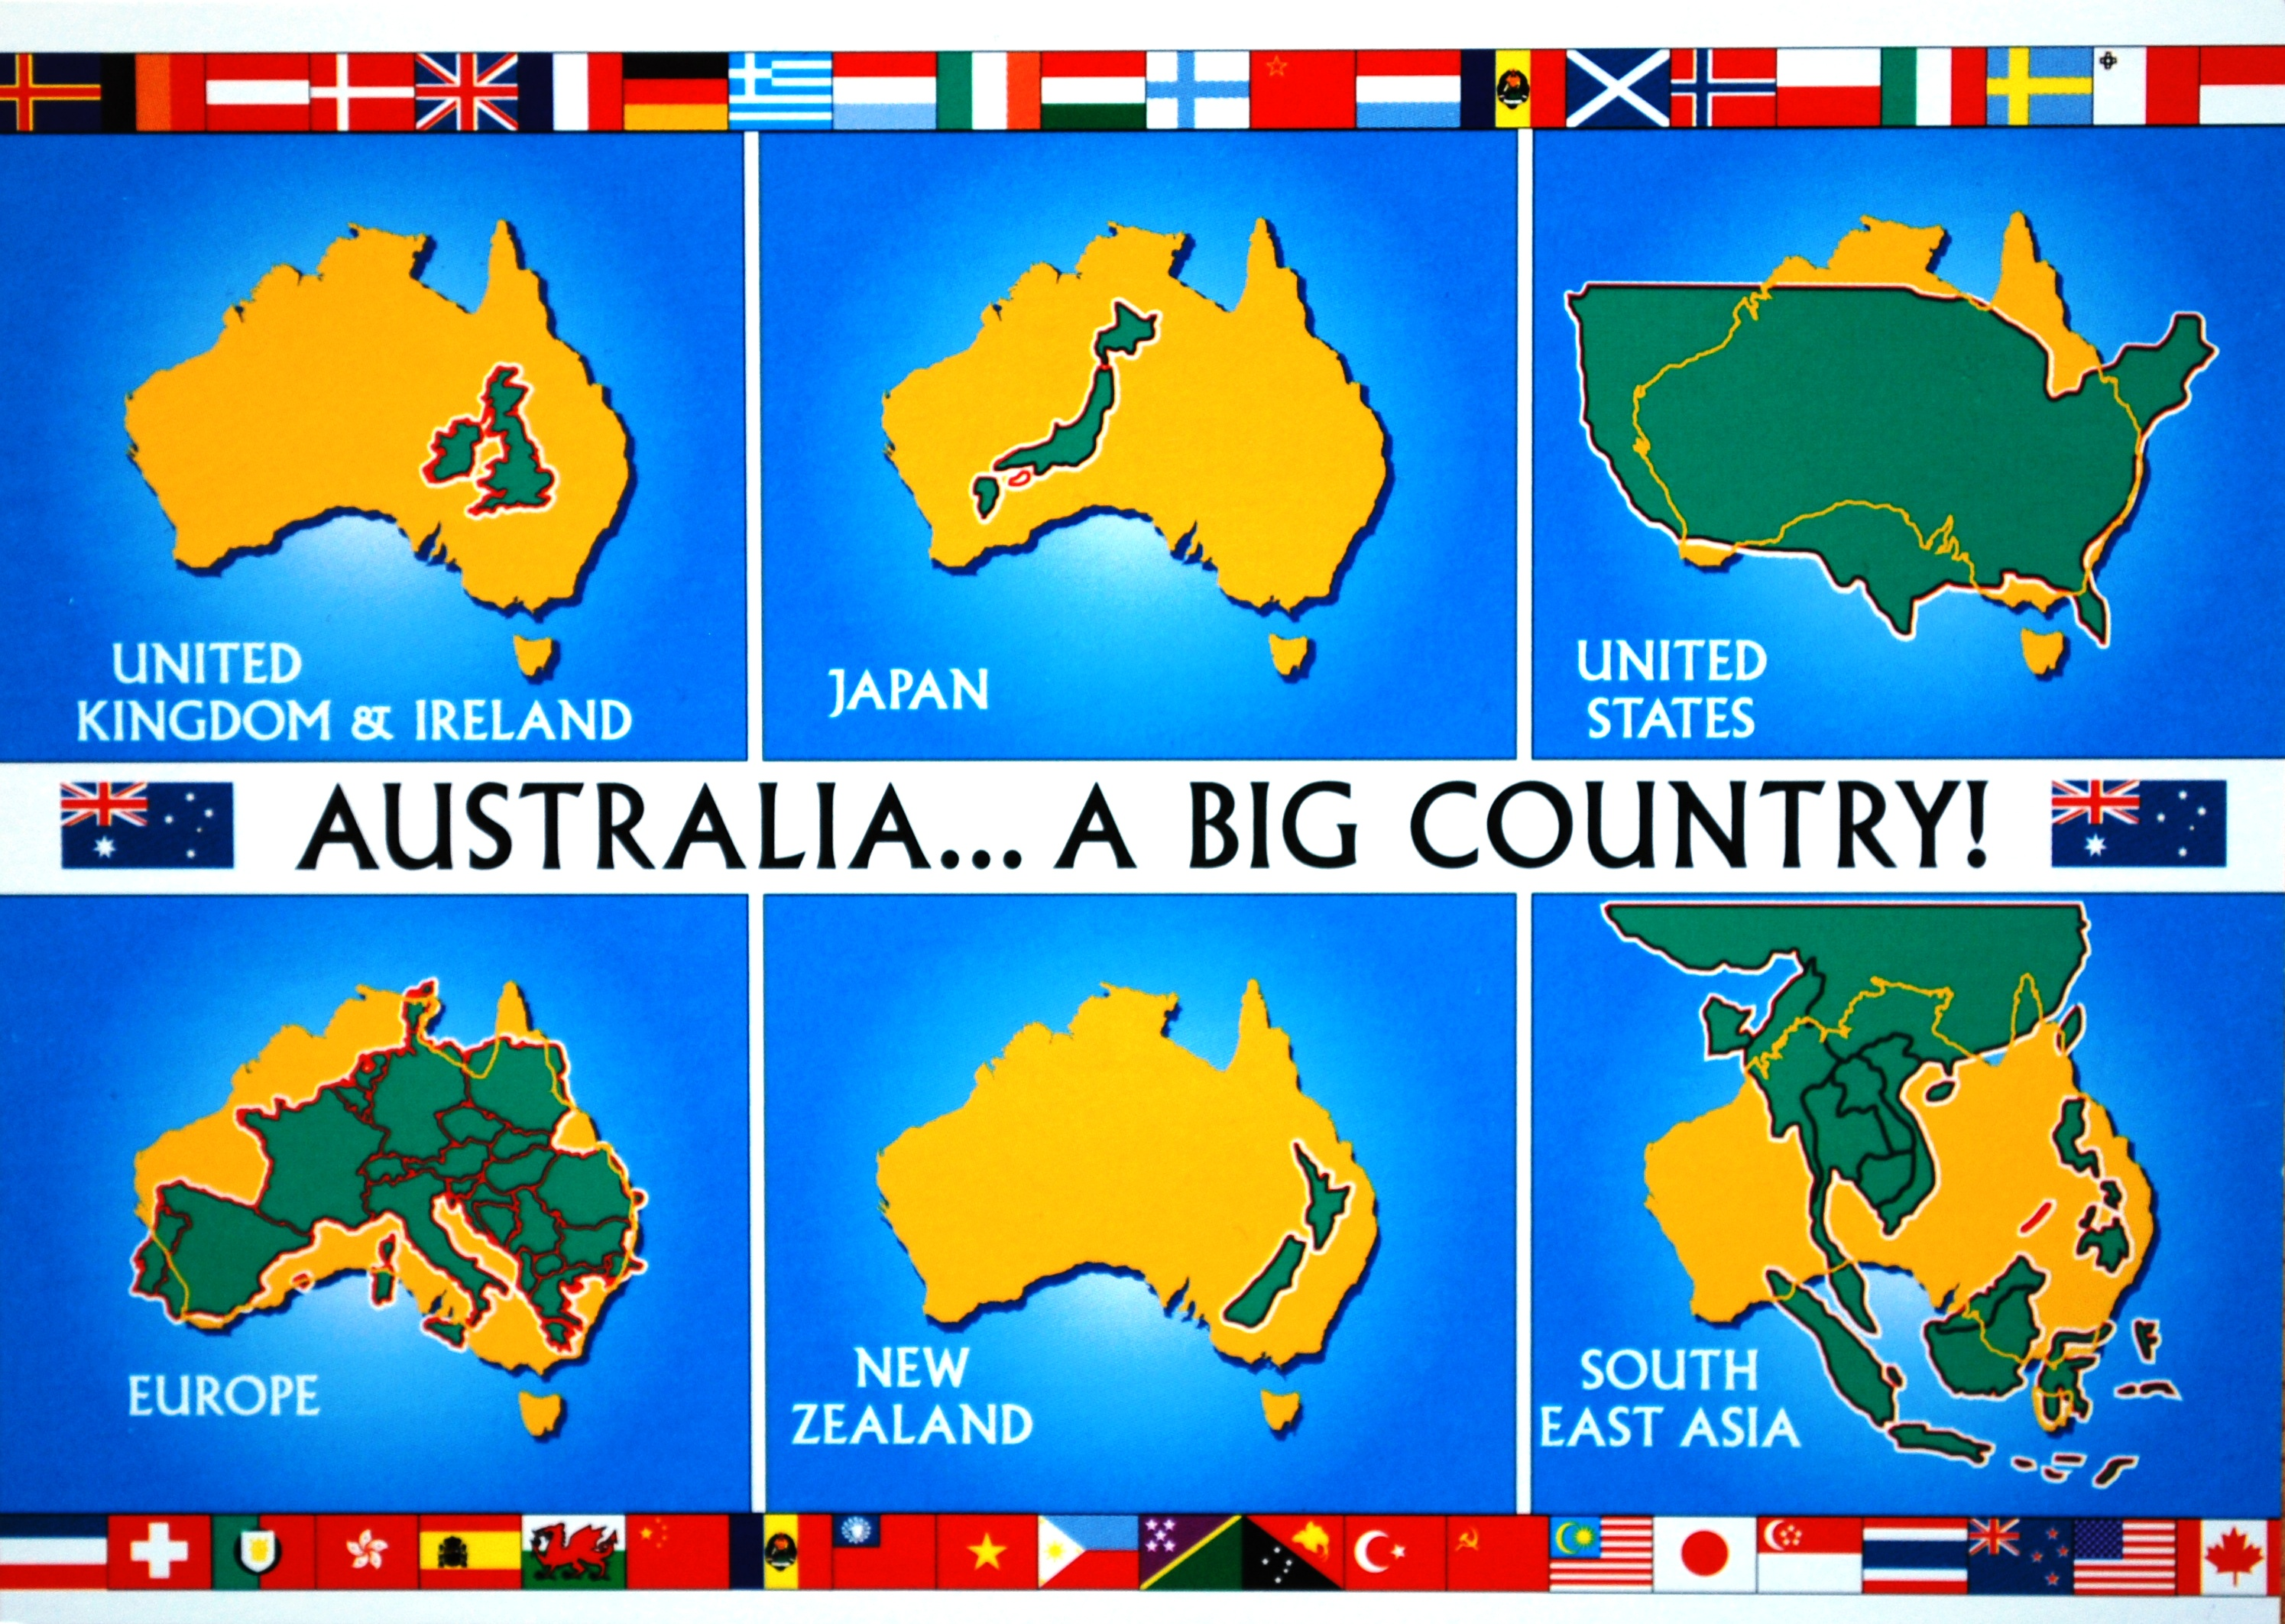 Australia a World Leader in Bigness – Big Map of Australia